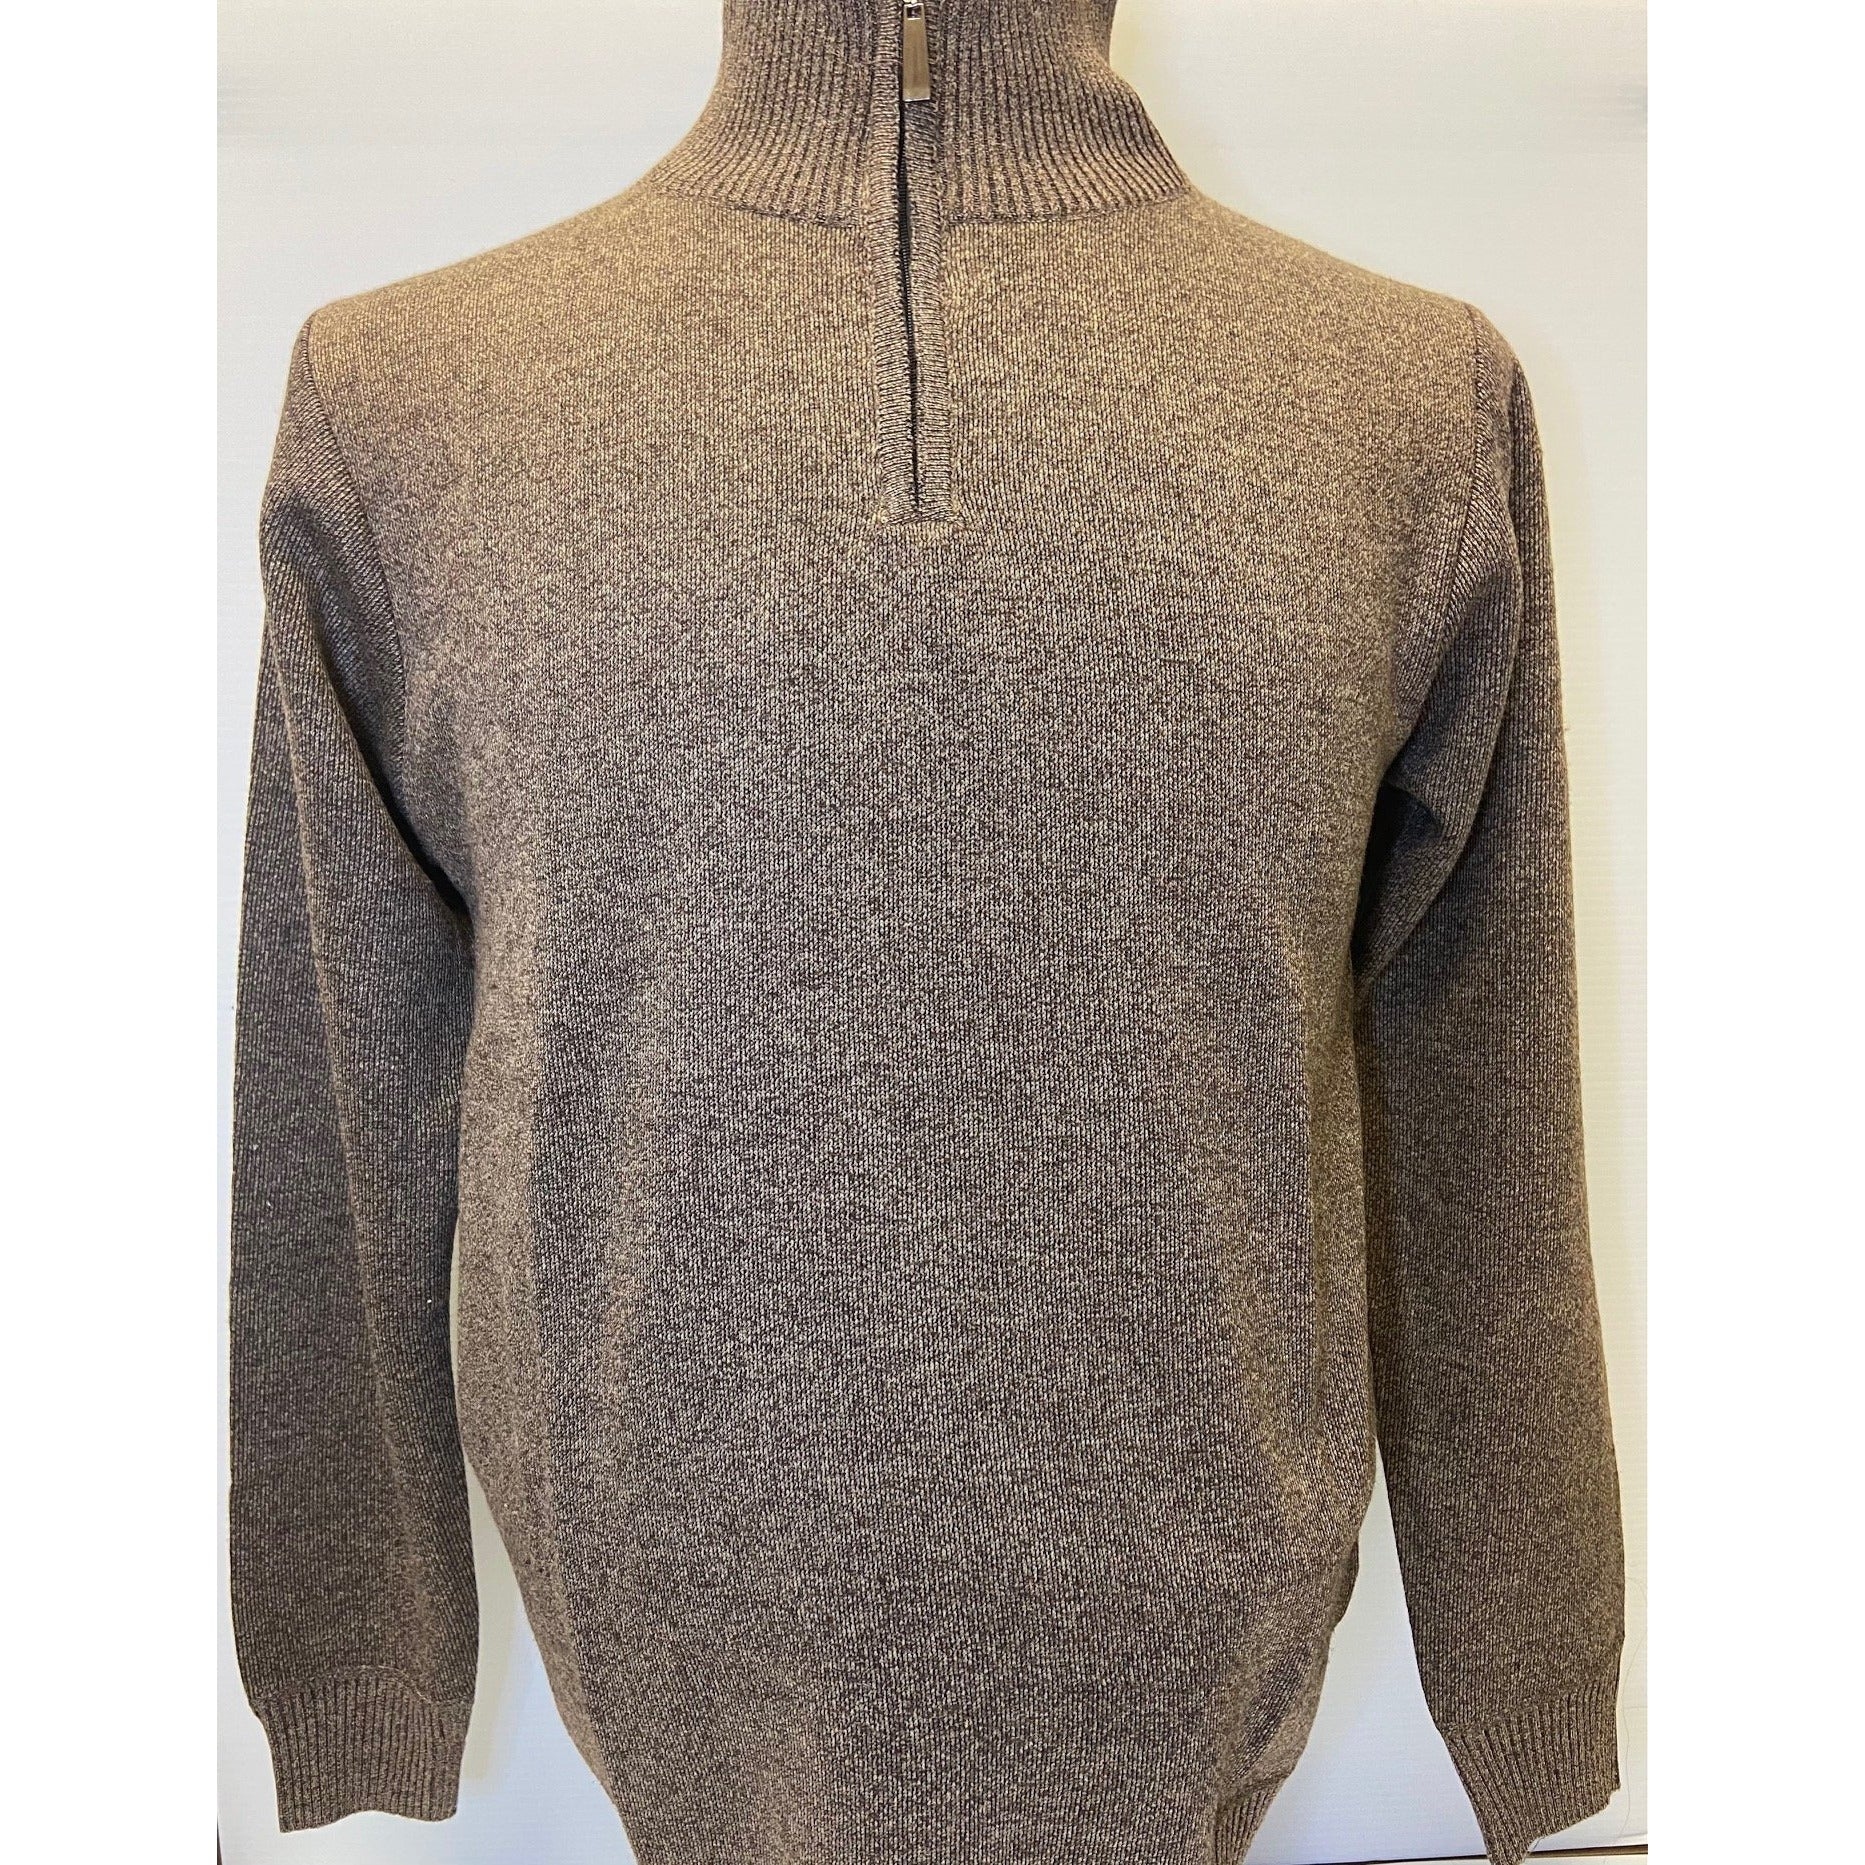 BILLY LONDON 1/4 ZIP SOLID SWEATER